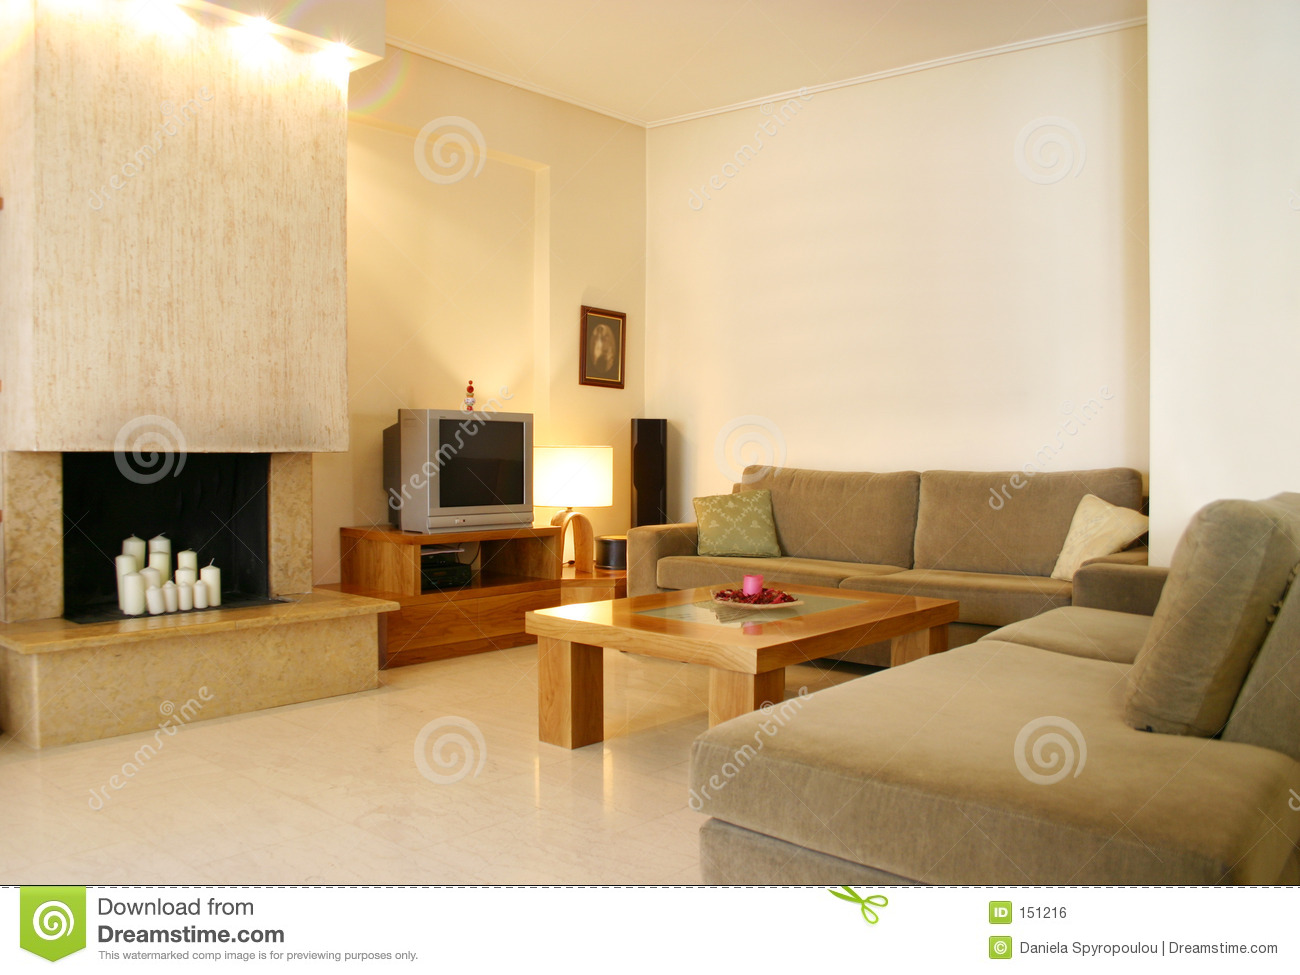 home interior design royalty free stock image image pic of interior design home - Interior Designs For Homes